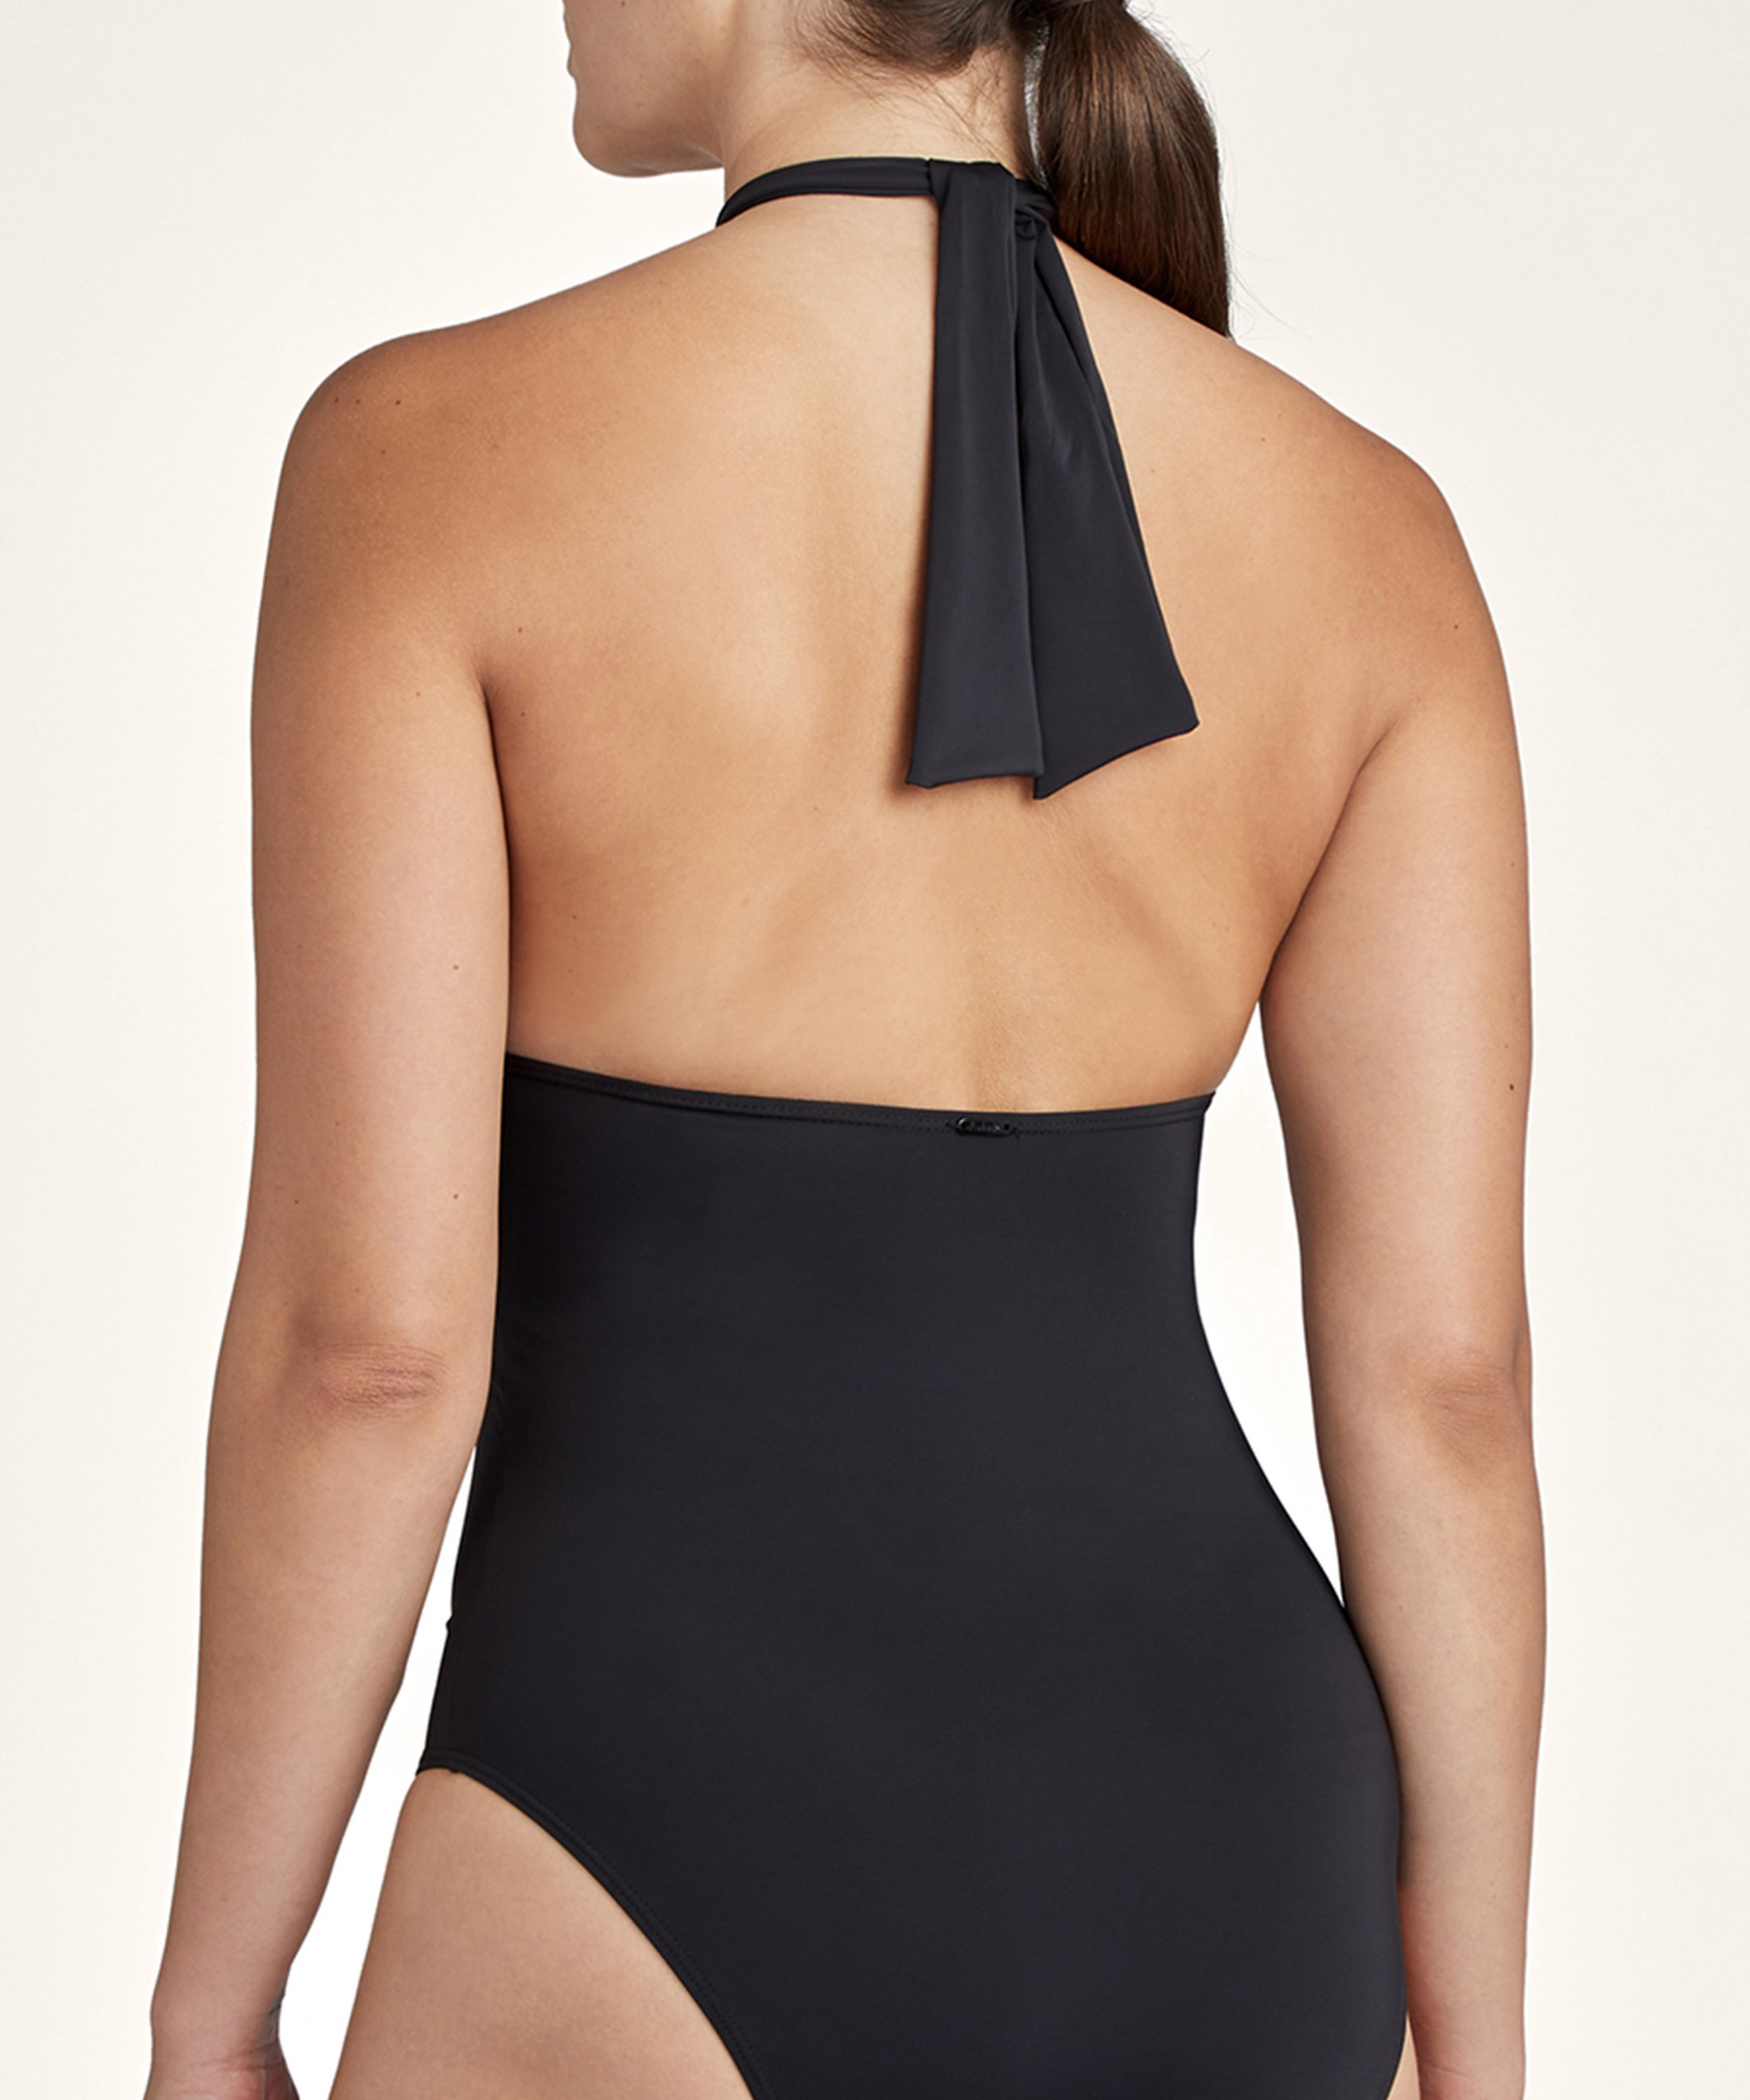 LA PLAGE ENSOLEILLÉE One-piece swimsuit with removable padding Black | Aubade